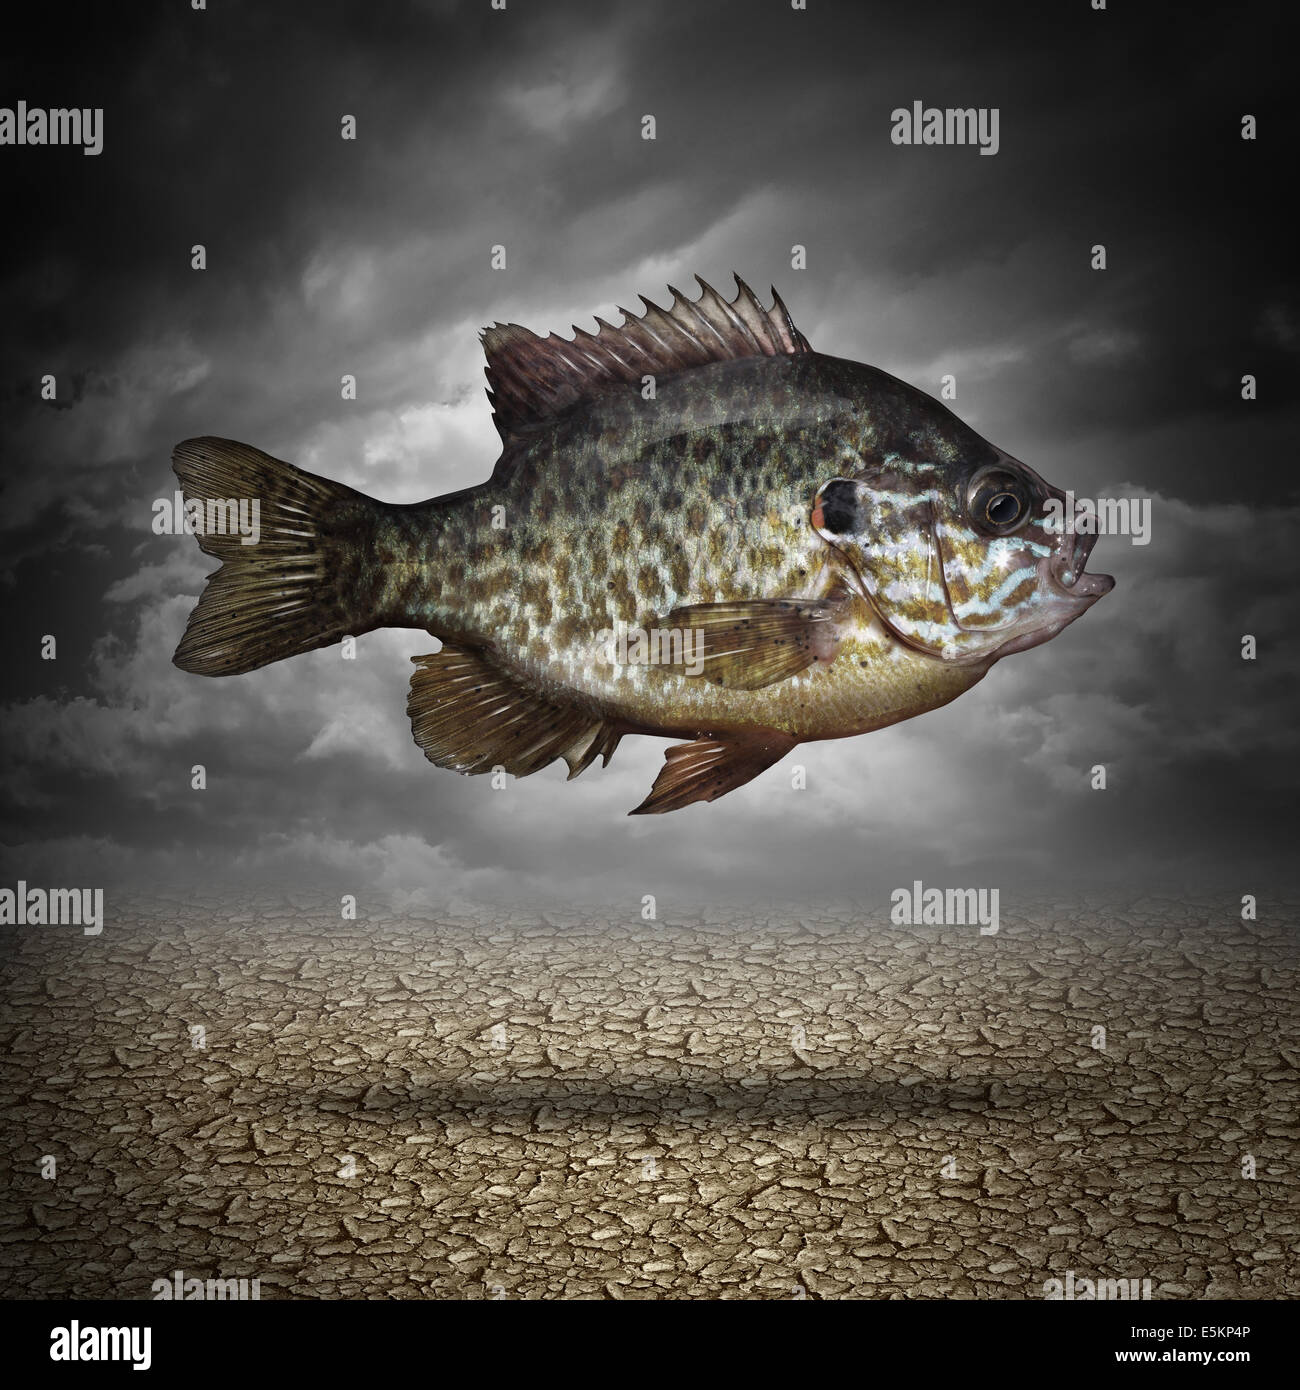 Symbol for adapting for Dream about fish out of water